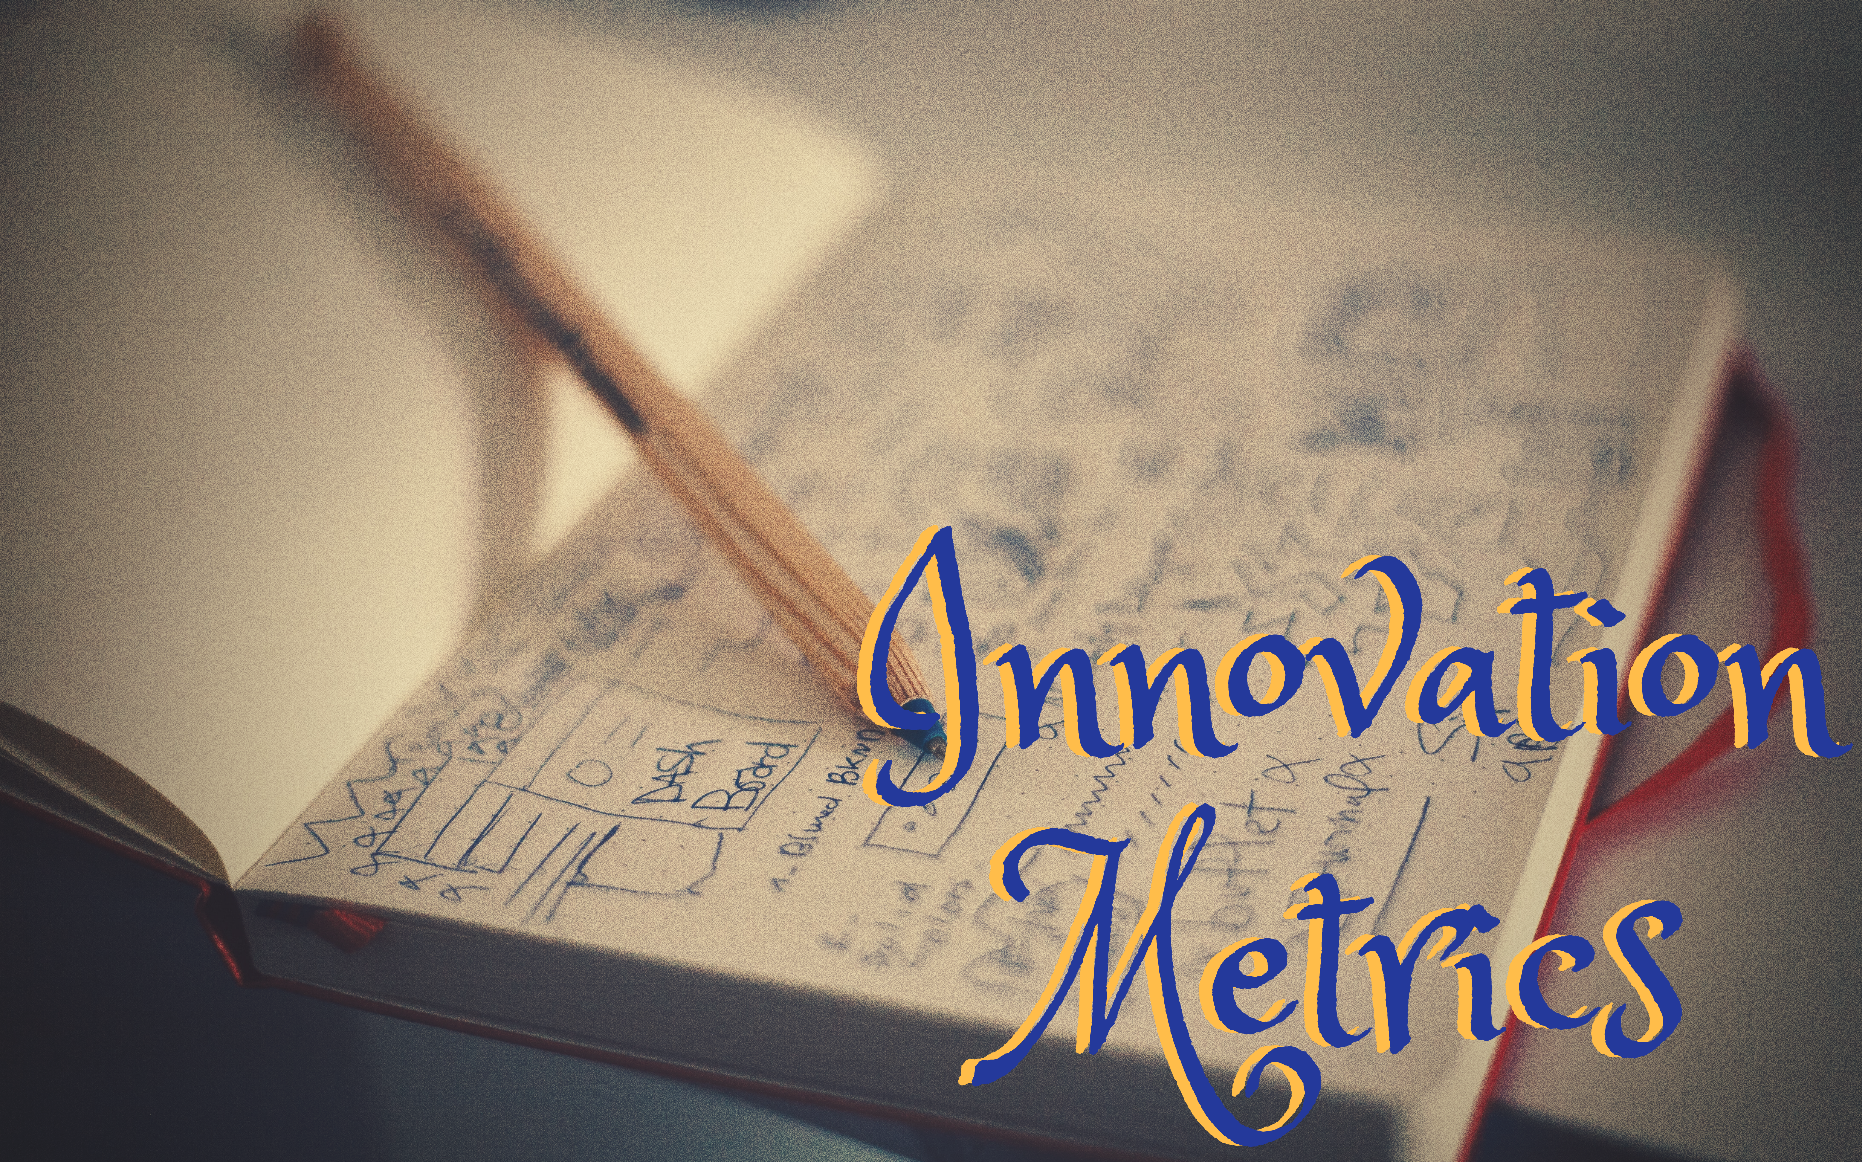 A Comprehensive Guide to Innovation Metrics: Definition, Uses, and Advantages